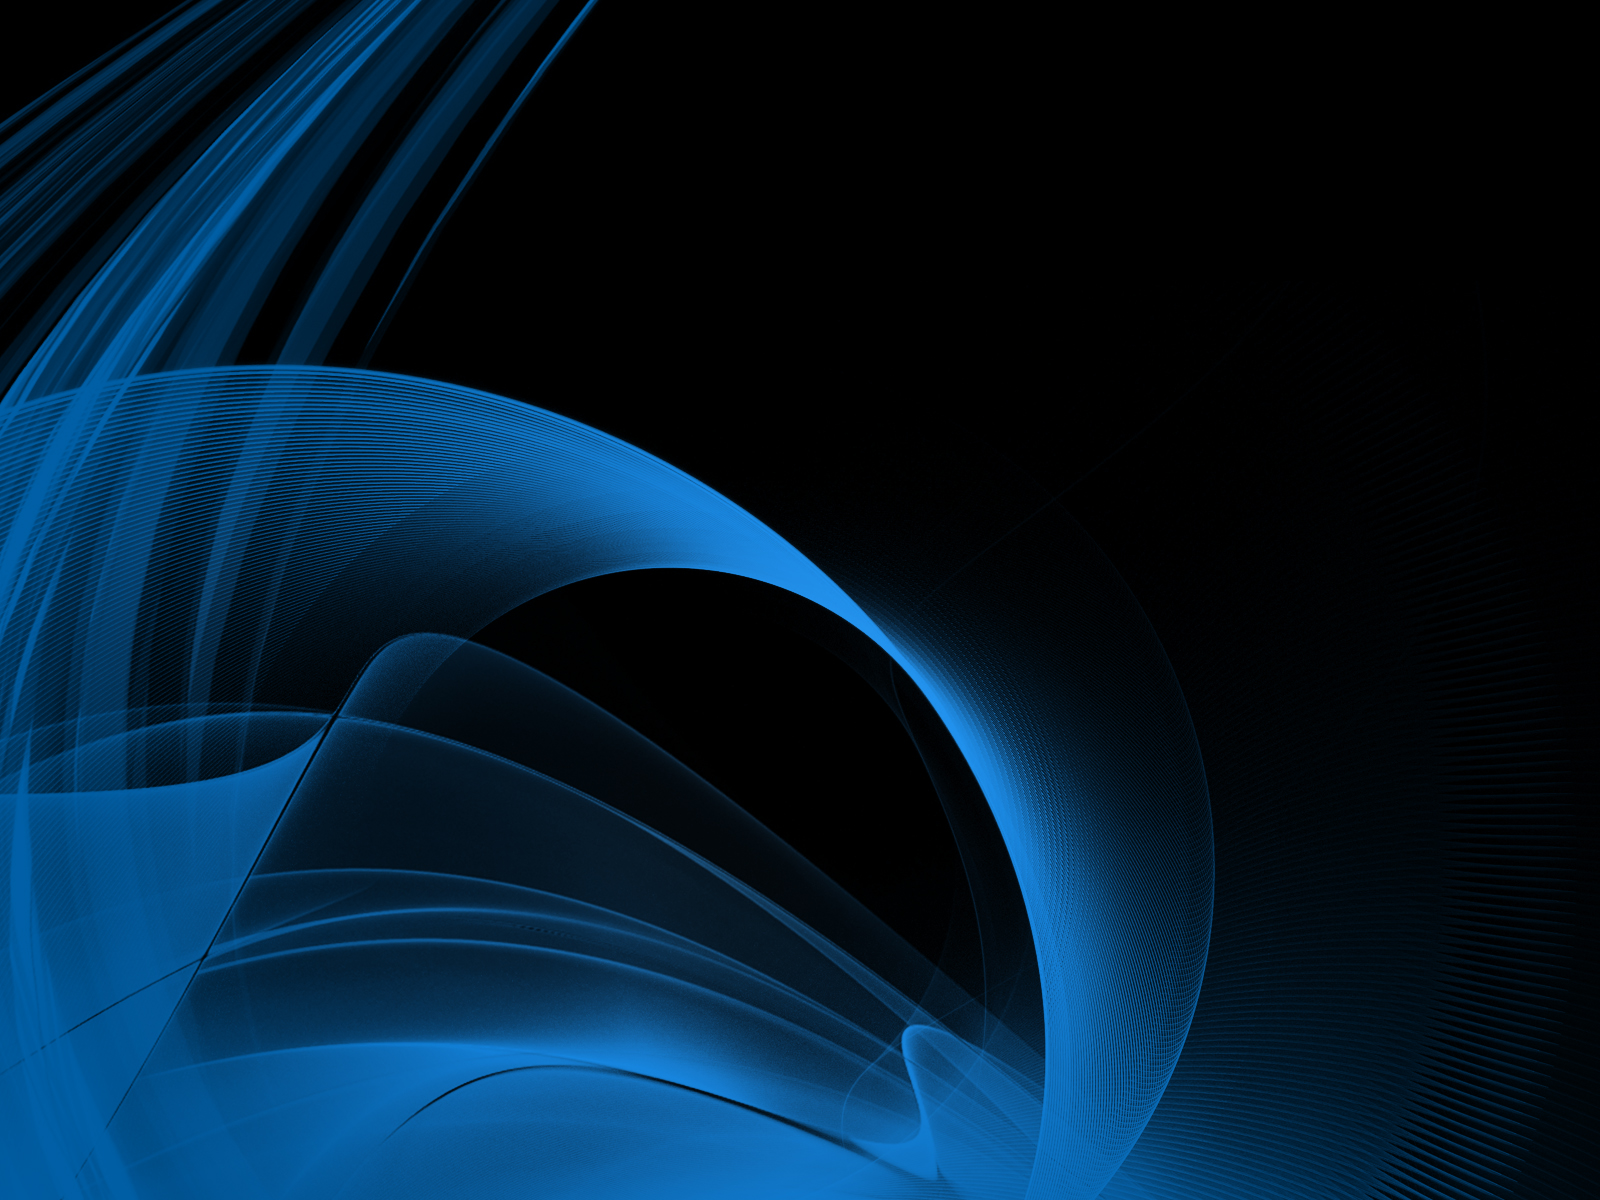 Hd Wallpaper 1920x1080 Black Blue: Black And Blue Abstract Wallpaper 16 Wide Wallpaper